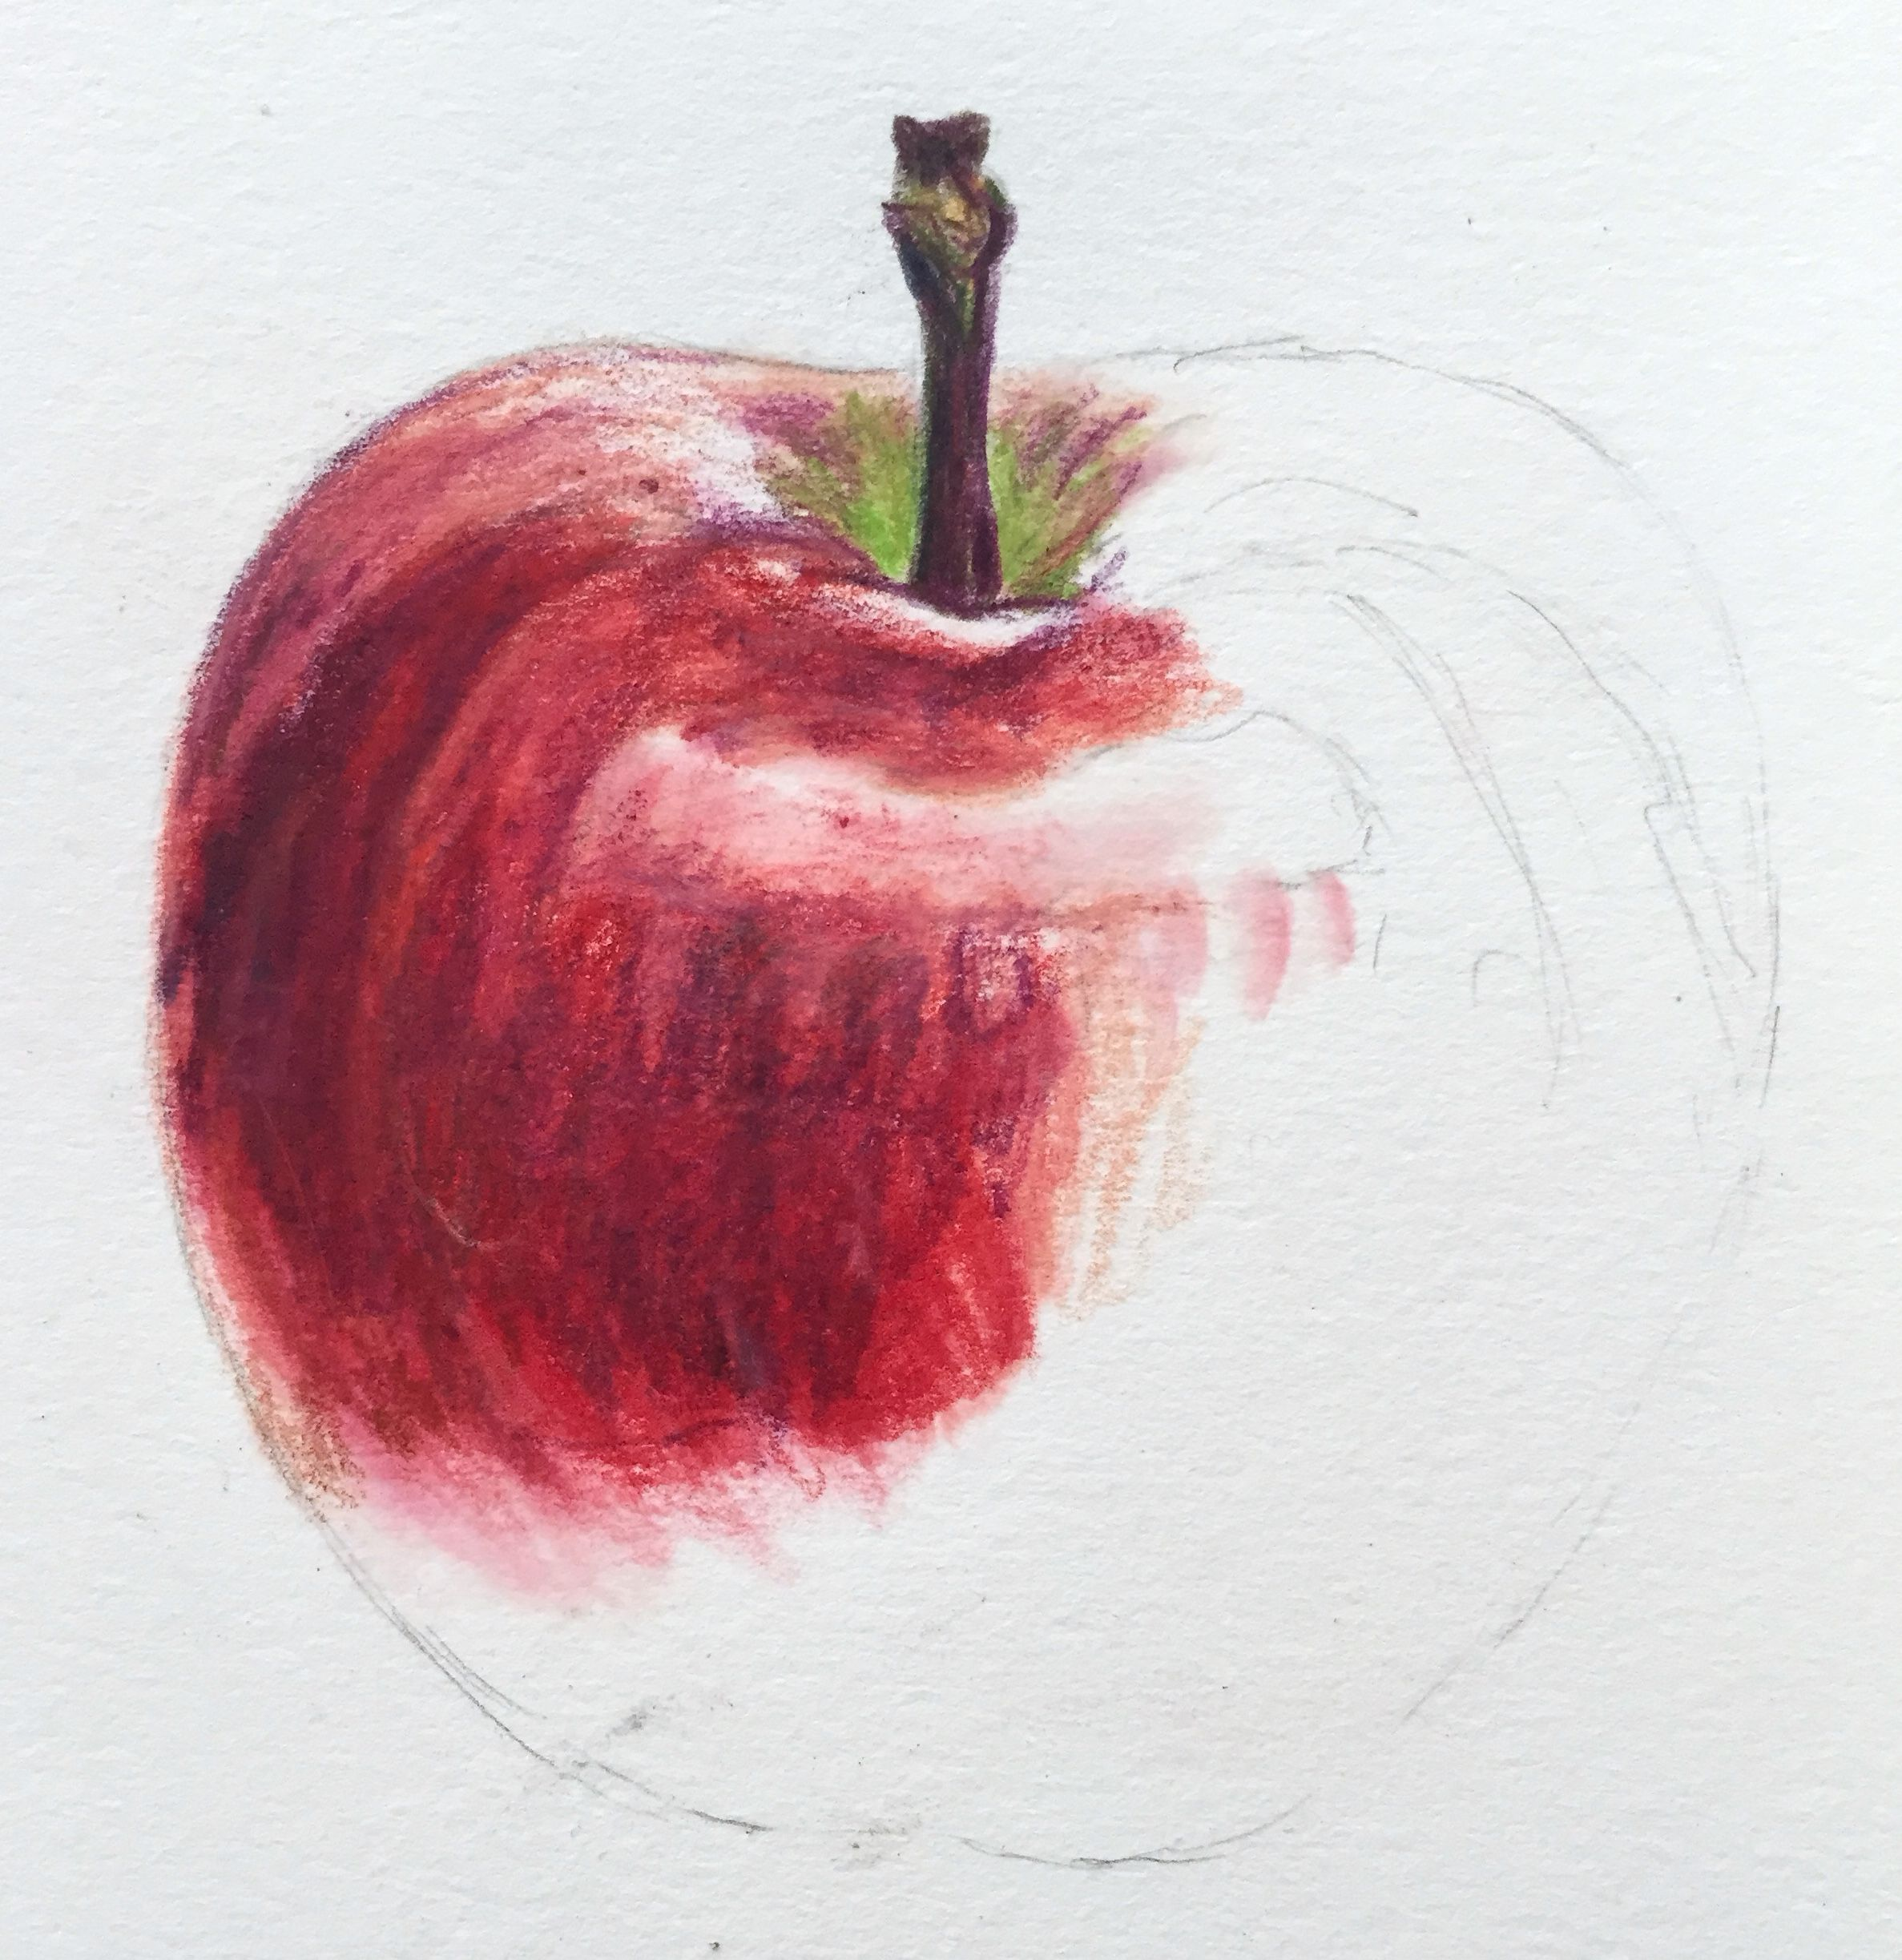 Learn to paint a red apple in coloured pencils as part of kate clarkes still life